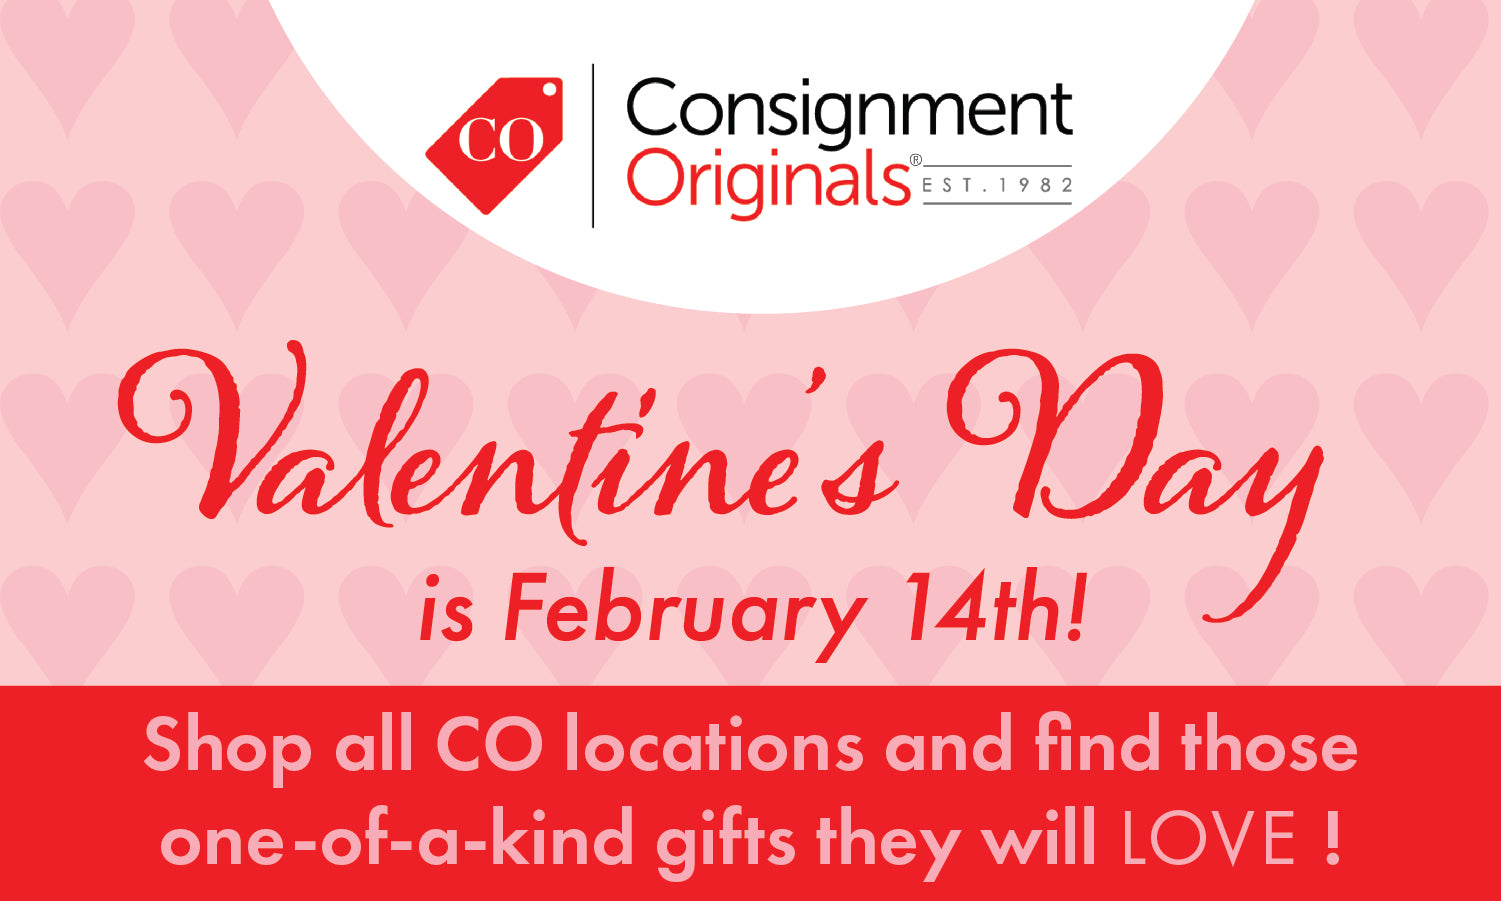 Valentine's Day at CO